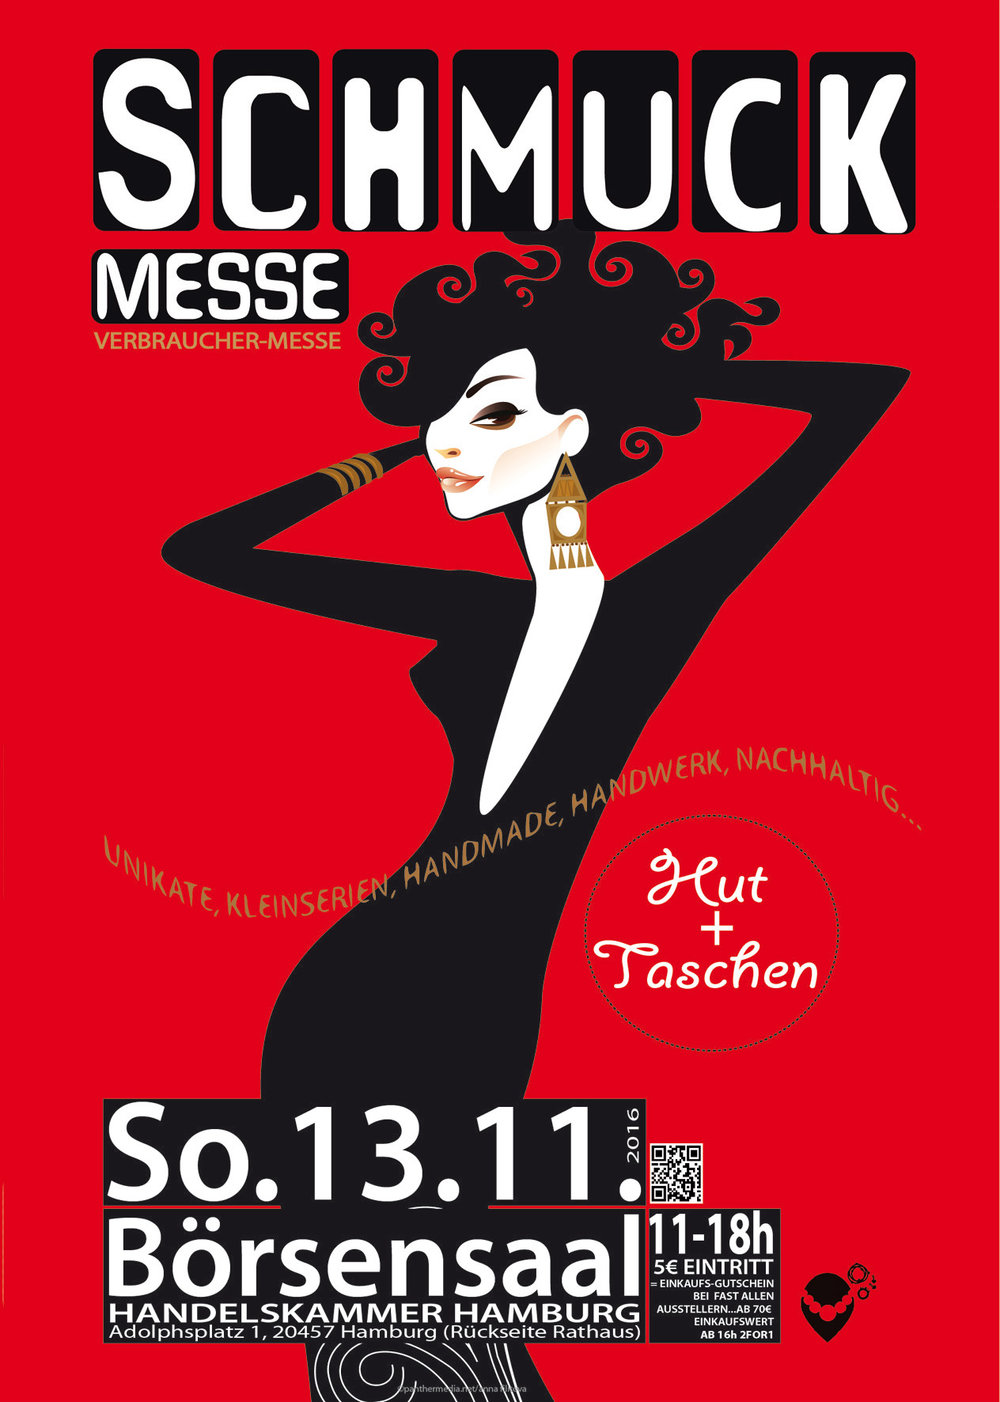 schmuck-messe-flyer-a6.jpg